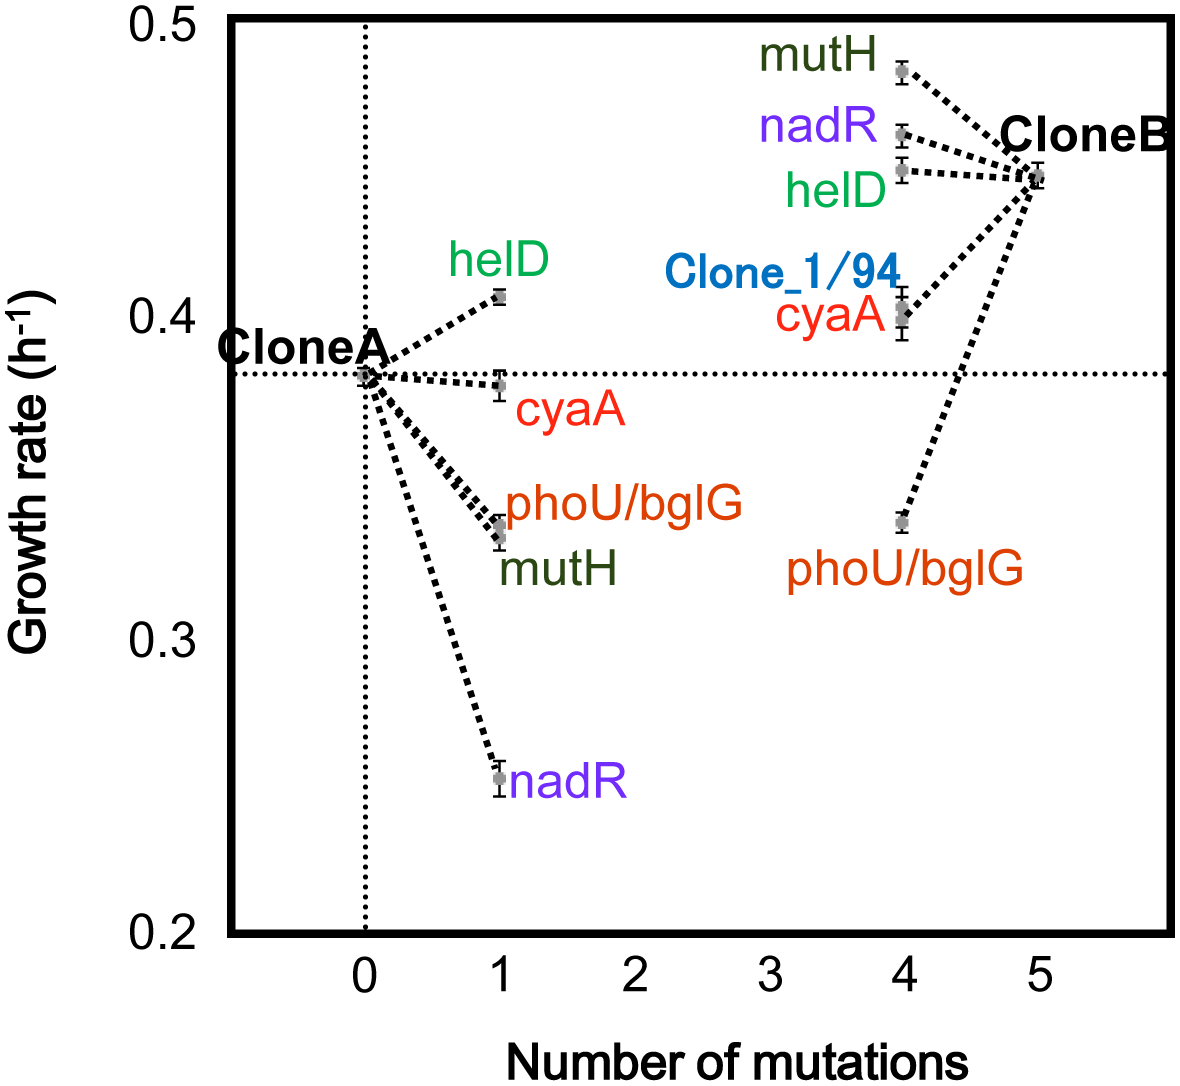 The effects of the five non-synonymous mutations in the first cluster on the growth rate.